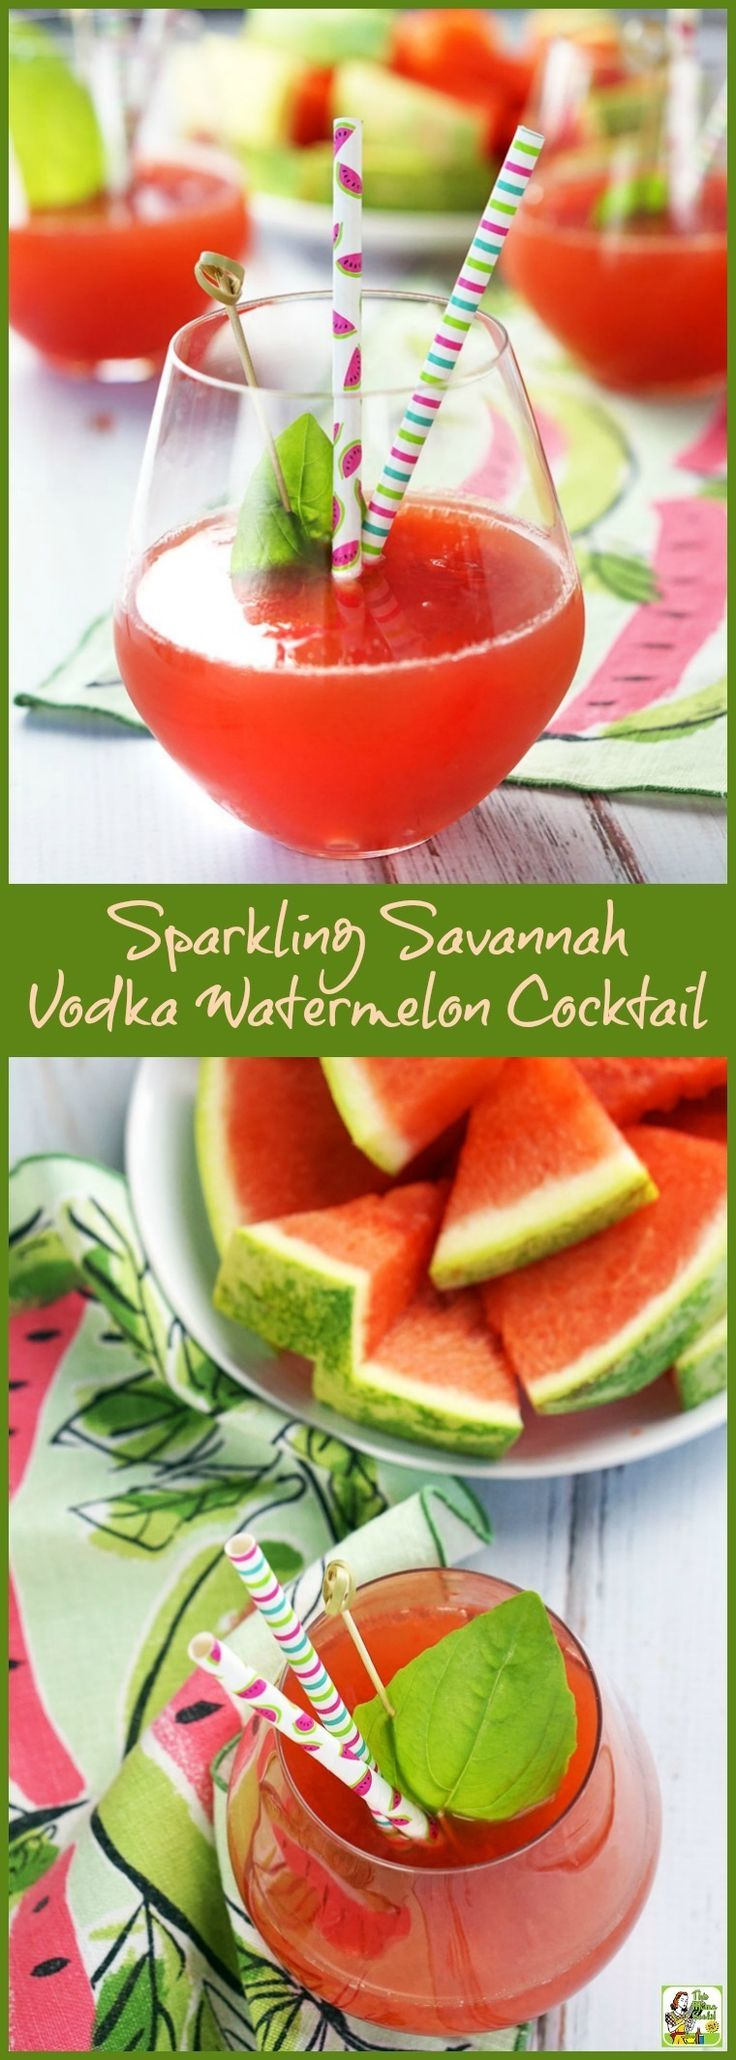 This refreshing cocktail is like a slice of watermelon in a glass. Get the recipe from Delish. This stupid-easy recipe requires no ice. Frozen watermelon cubes do the job on their own. I know.